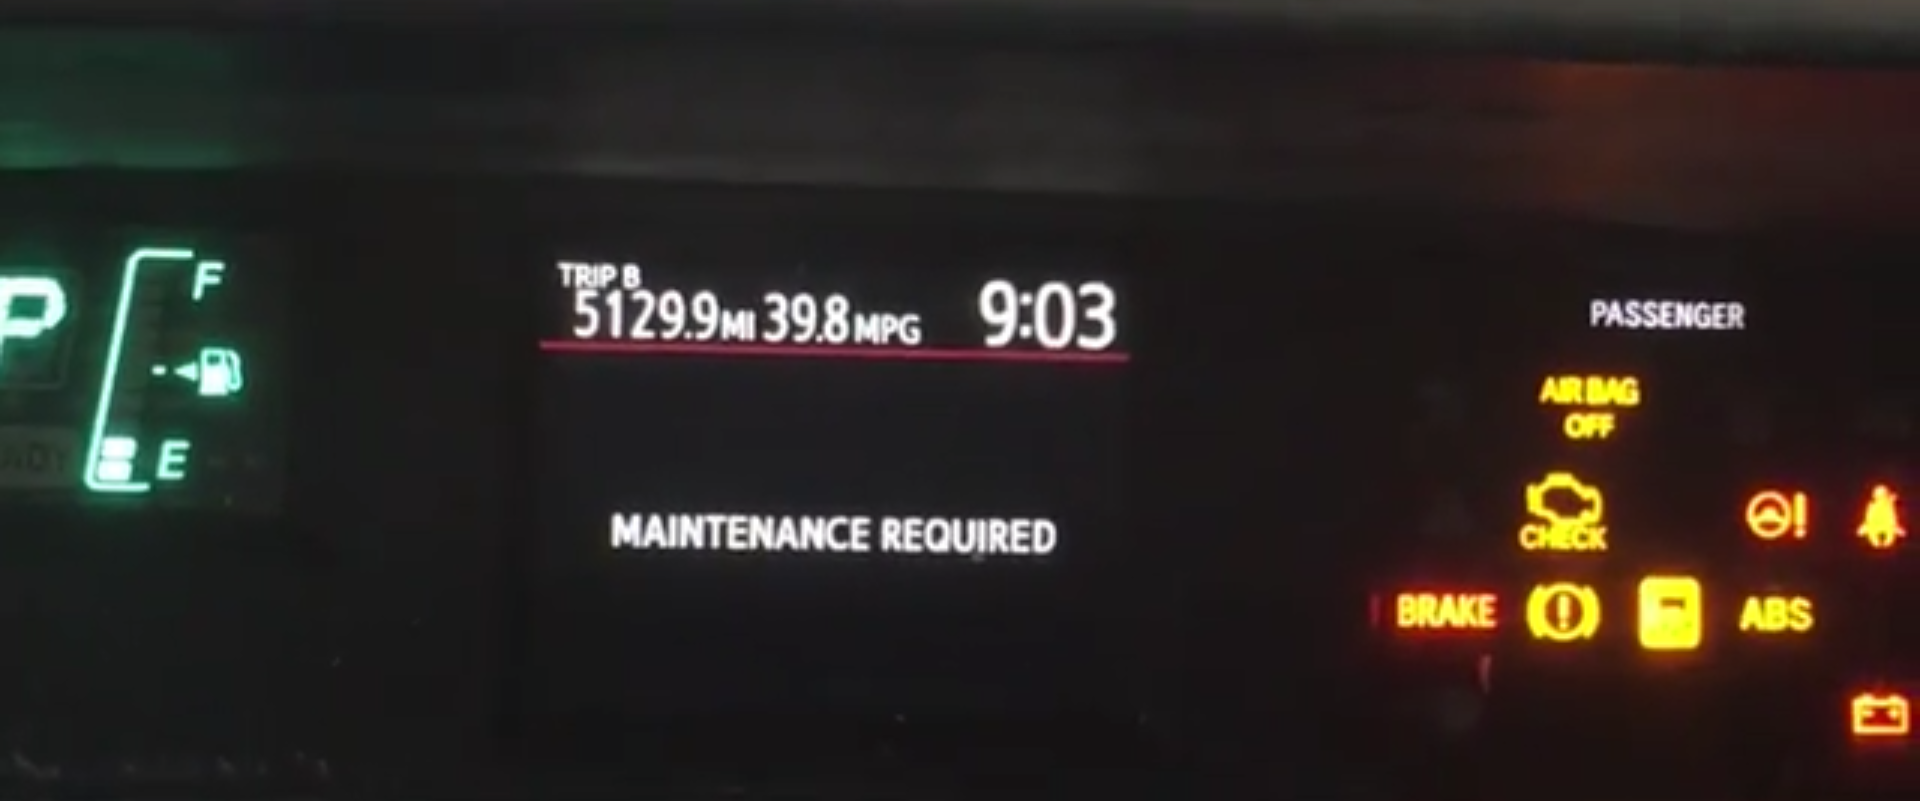 Prius Maintenance Required >> How To Reset The Maintenance Required Light On A 2014 Prius C How